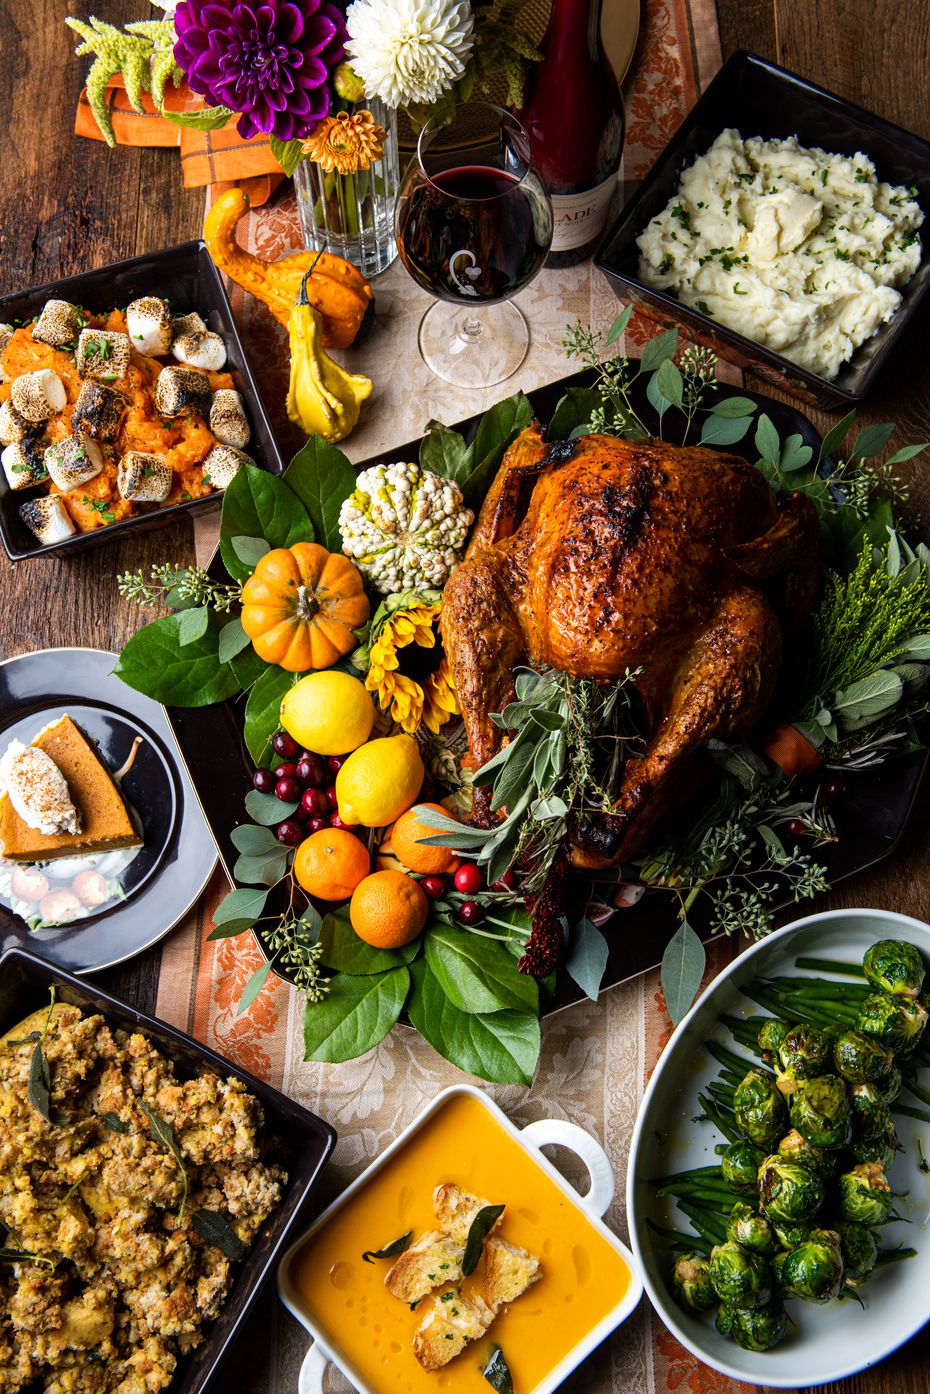 You won't have to wash any dishes this Thanksgiving if you let the chefs at Crú Food & Wine Bar do the cooking. Dozens of restaurants in North Texas are offering special Thanksgiving menus on Thursday, Nov. 28, 2019.